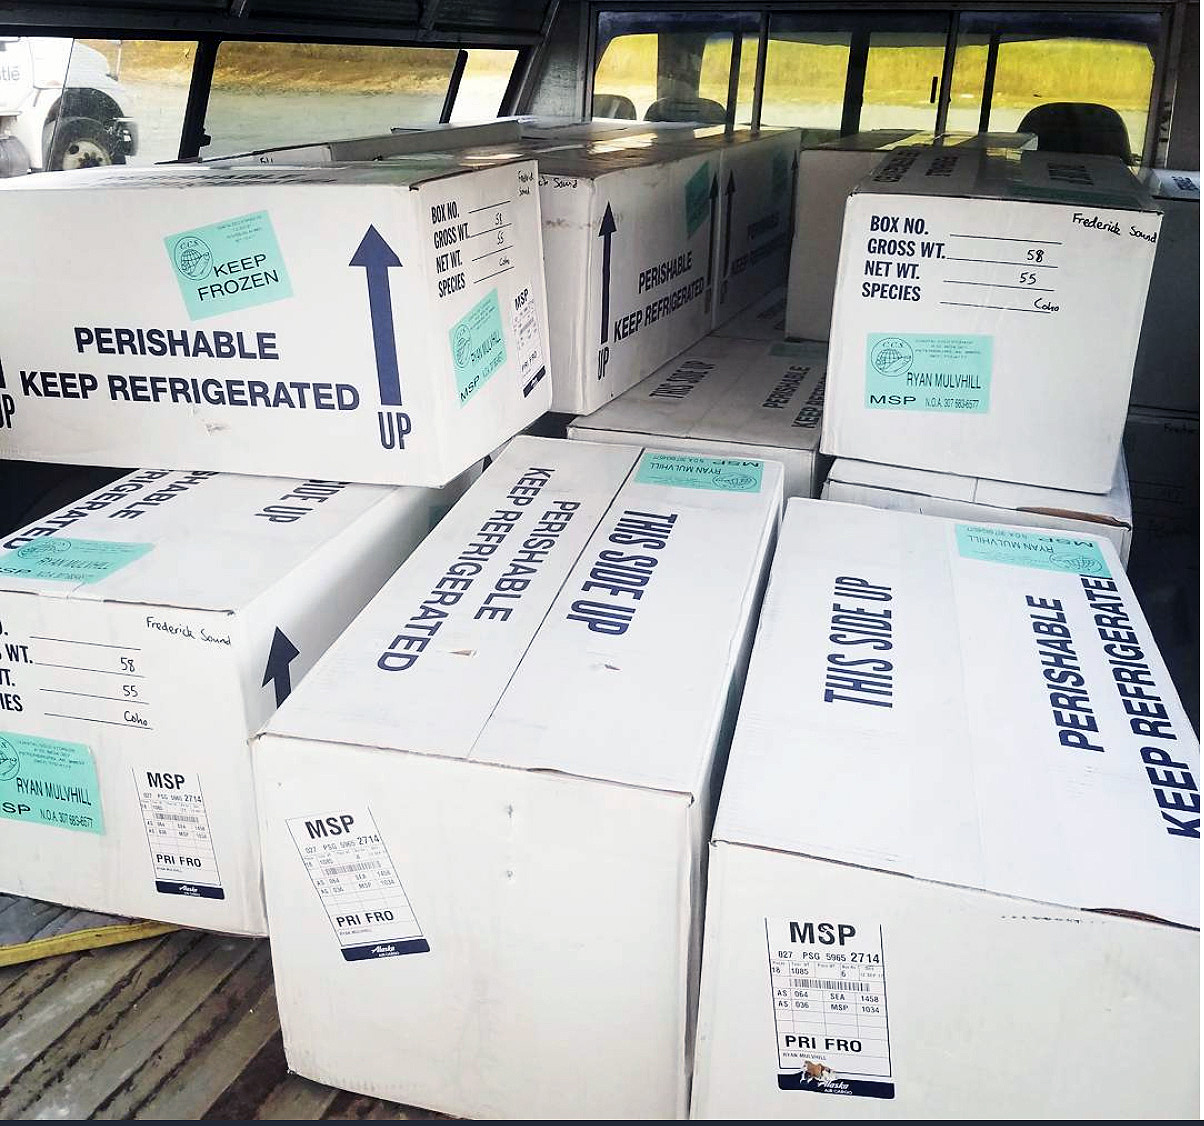 Salmon processed, frozen, packaged and ready for shipment. Photo courtesy of Frederick Sound Fish Co.